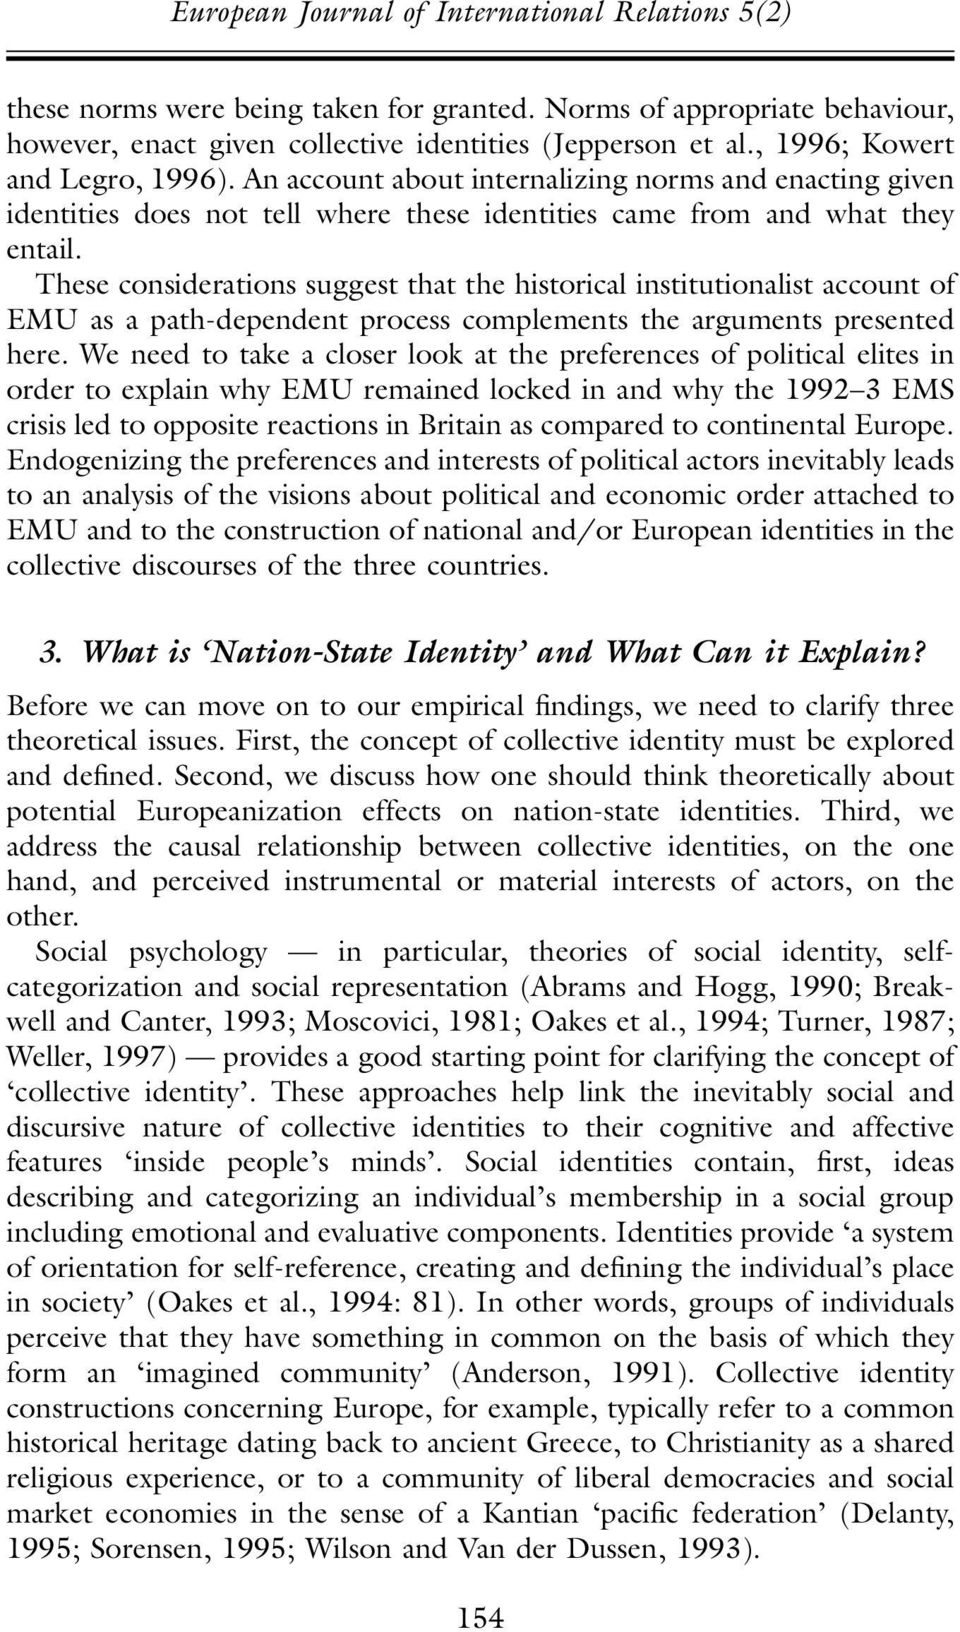 These considerations suggest that the historical institutionalist account of EMU as a path-dependent process complements the arguments presented here.